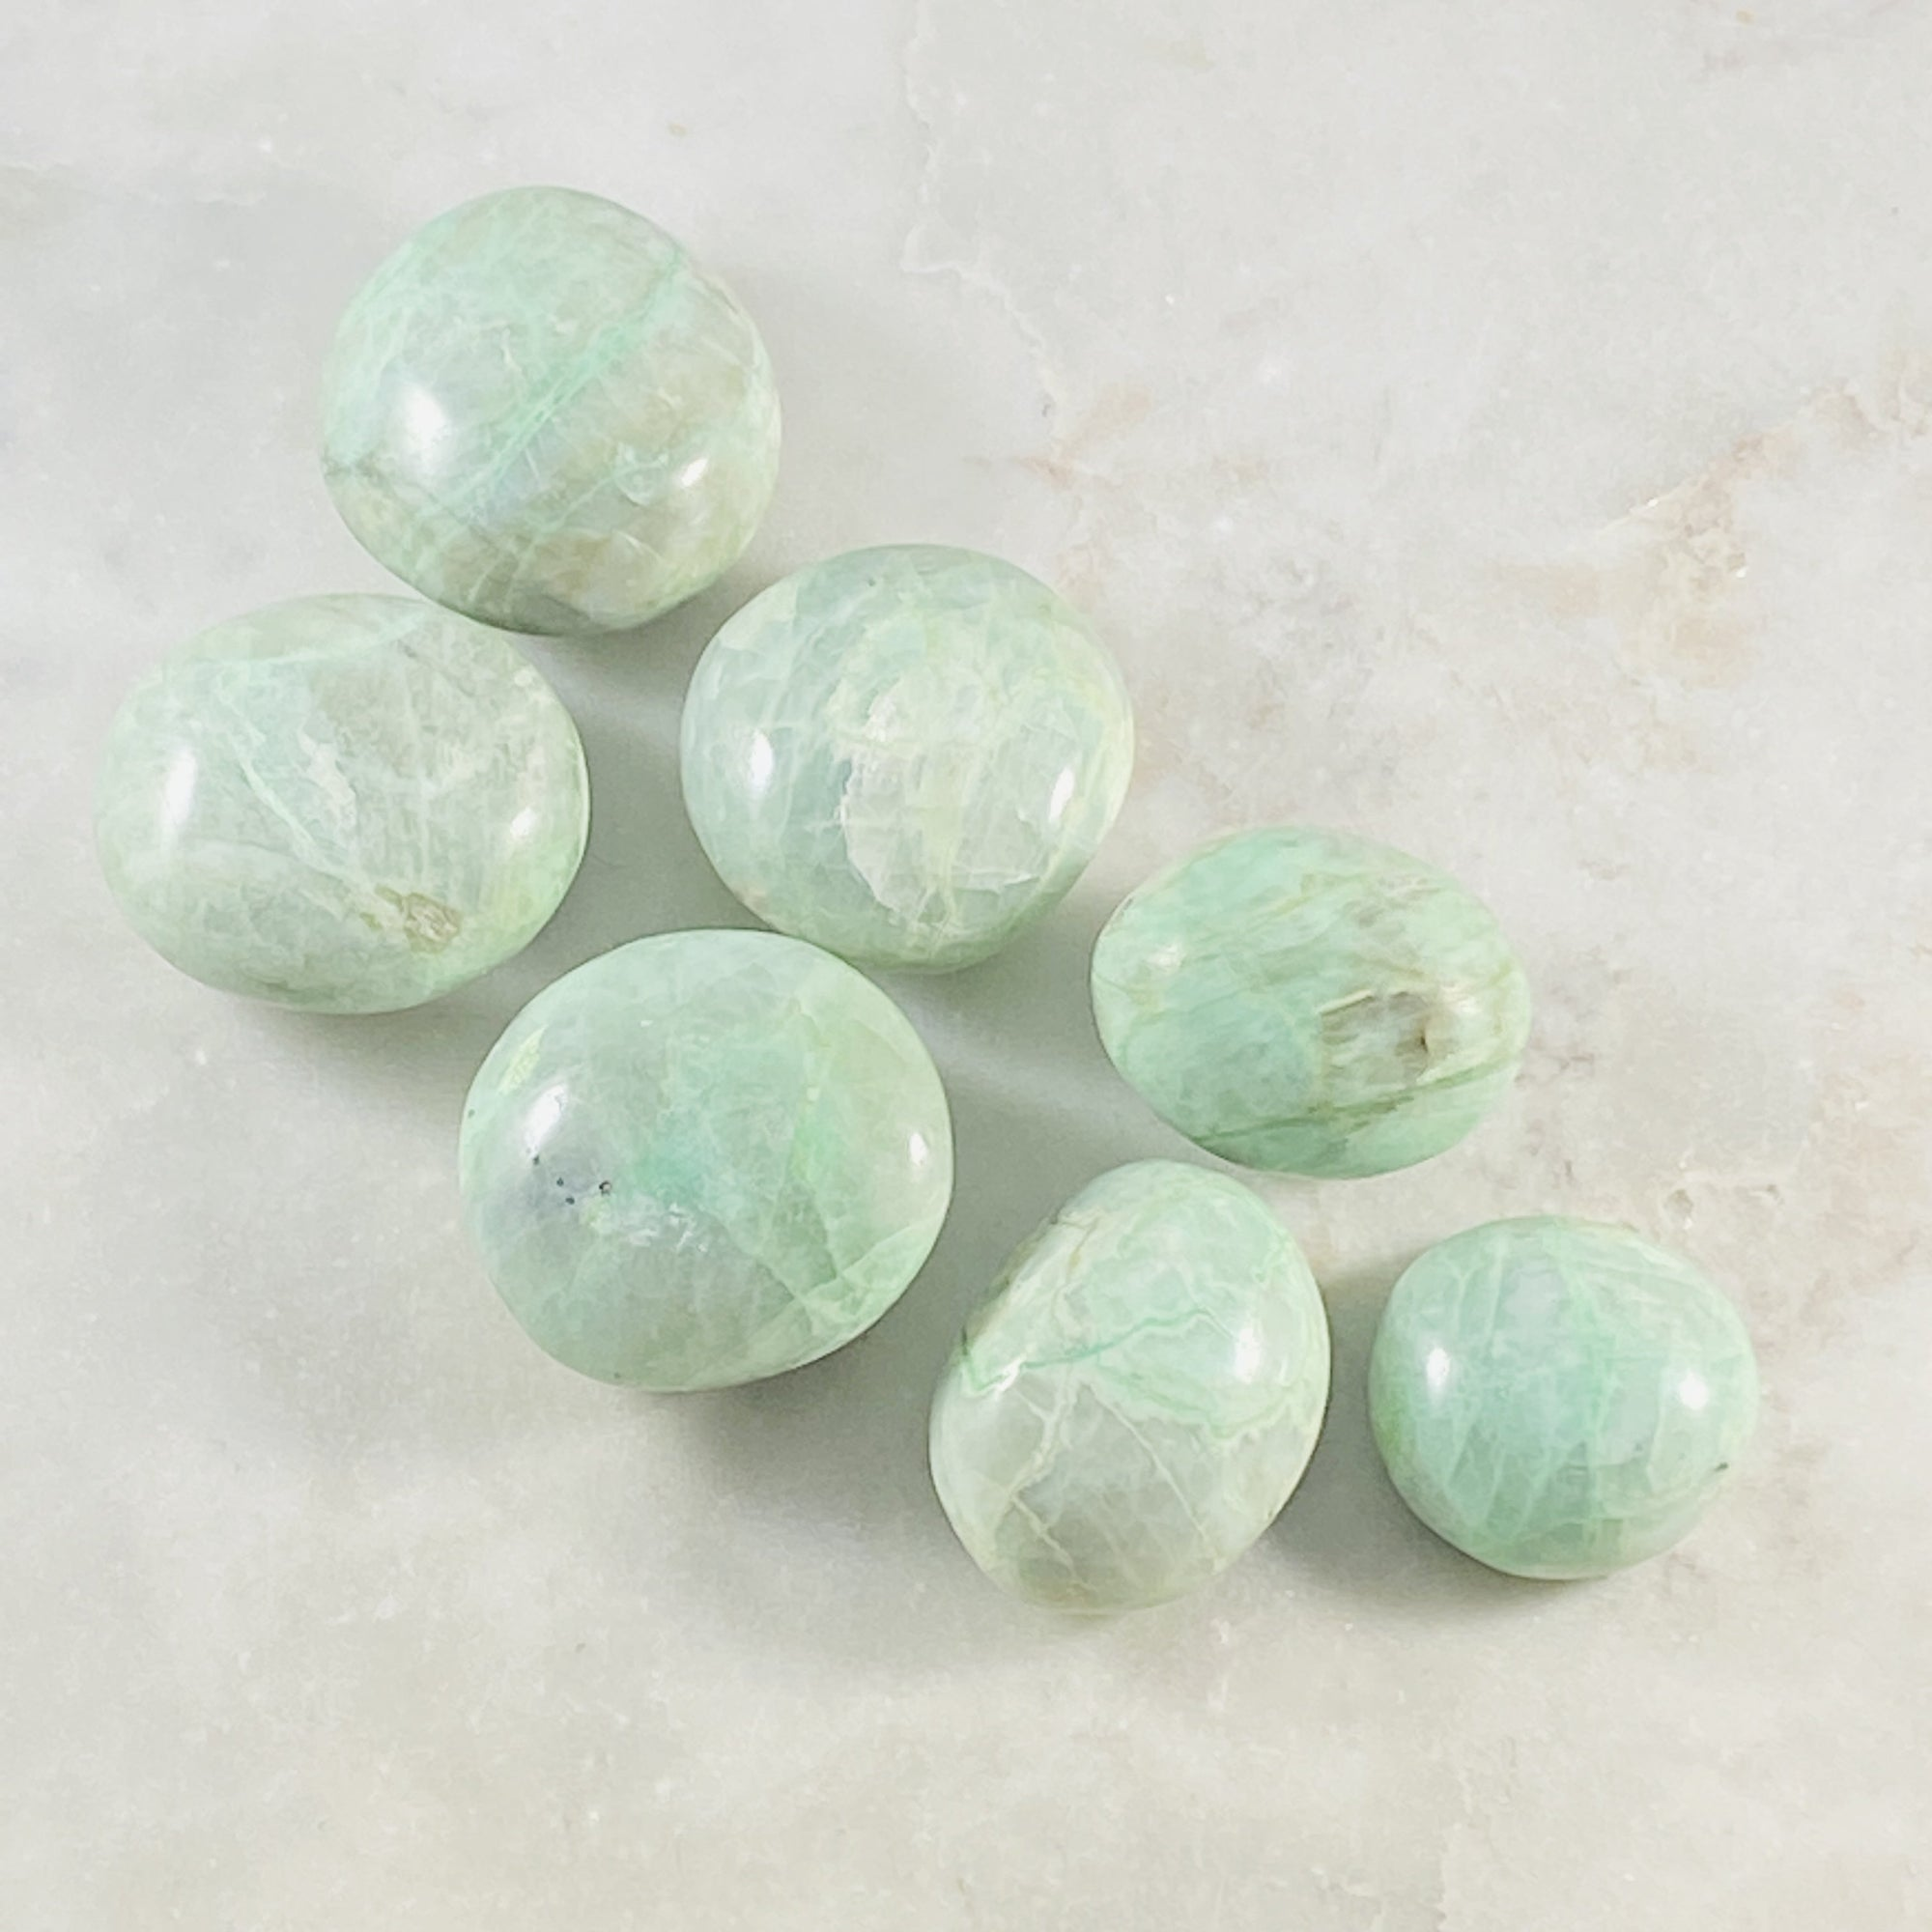 green moonstone for the heart chakra by sarah belle